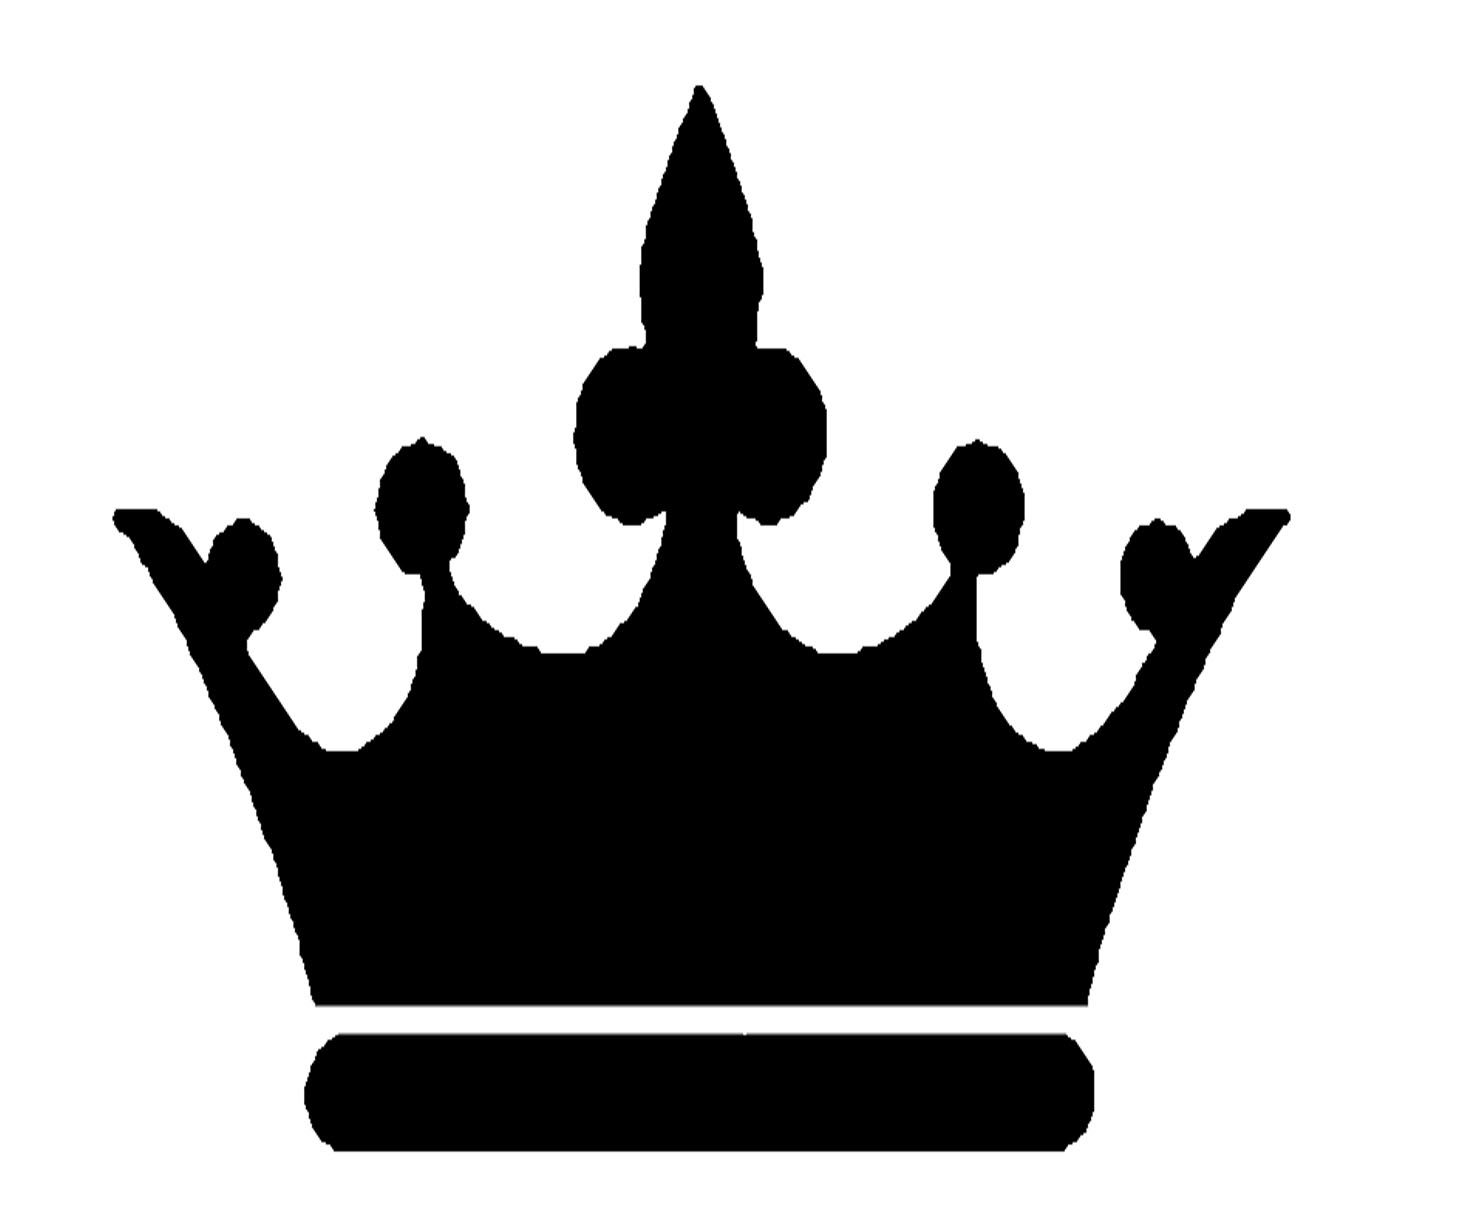 king crown clip art black and white clipart best clipart best rh pinterest ca king crown clipart silhouette king crown clip art image